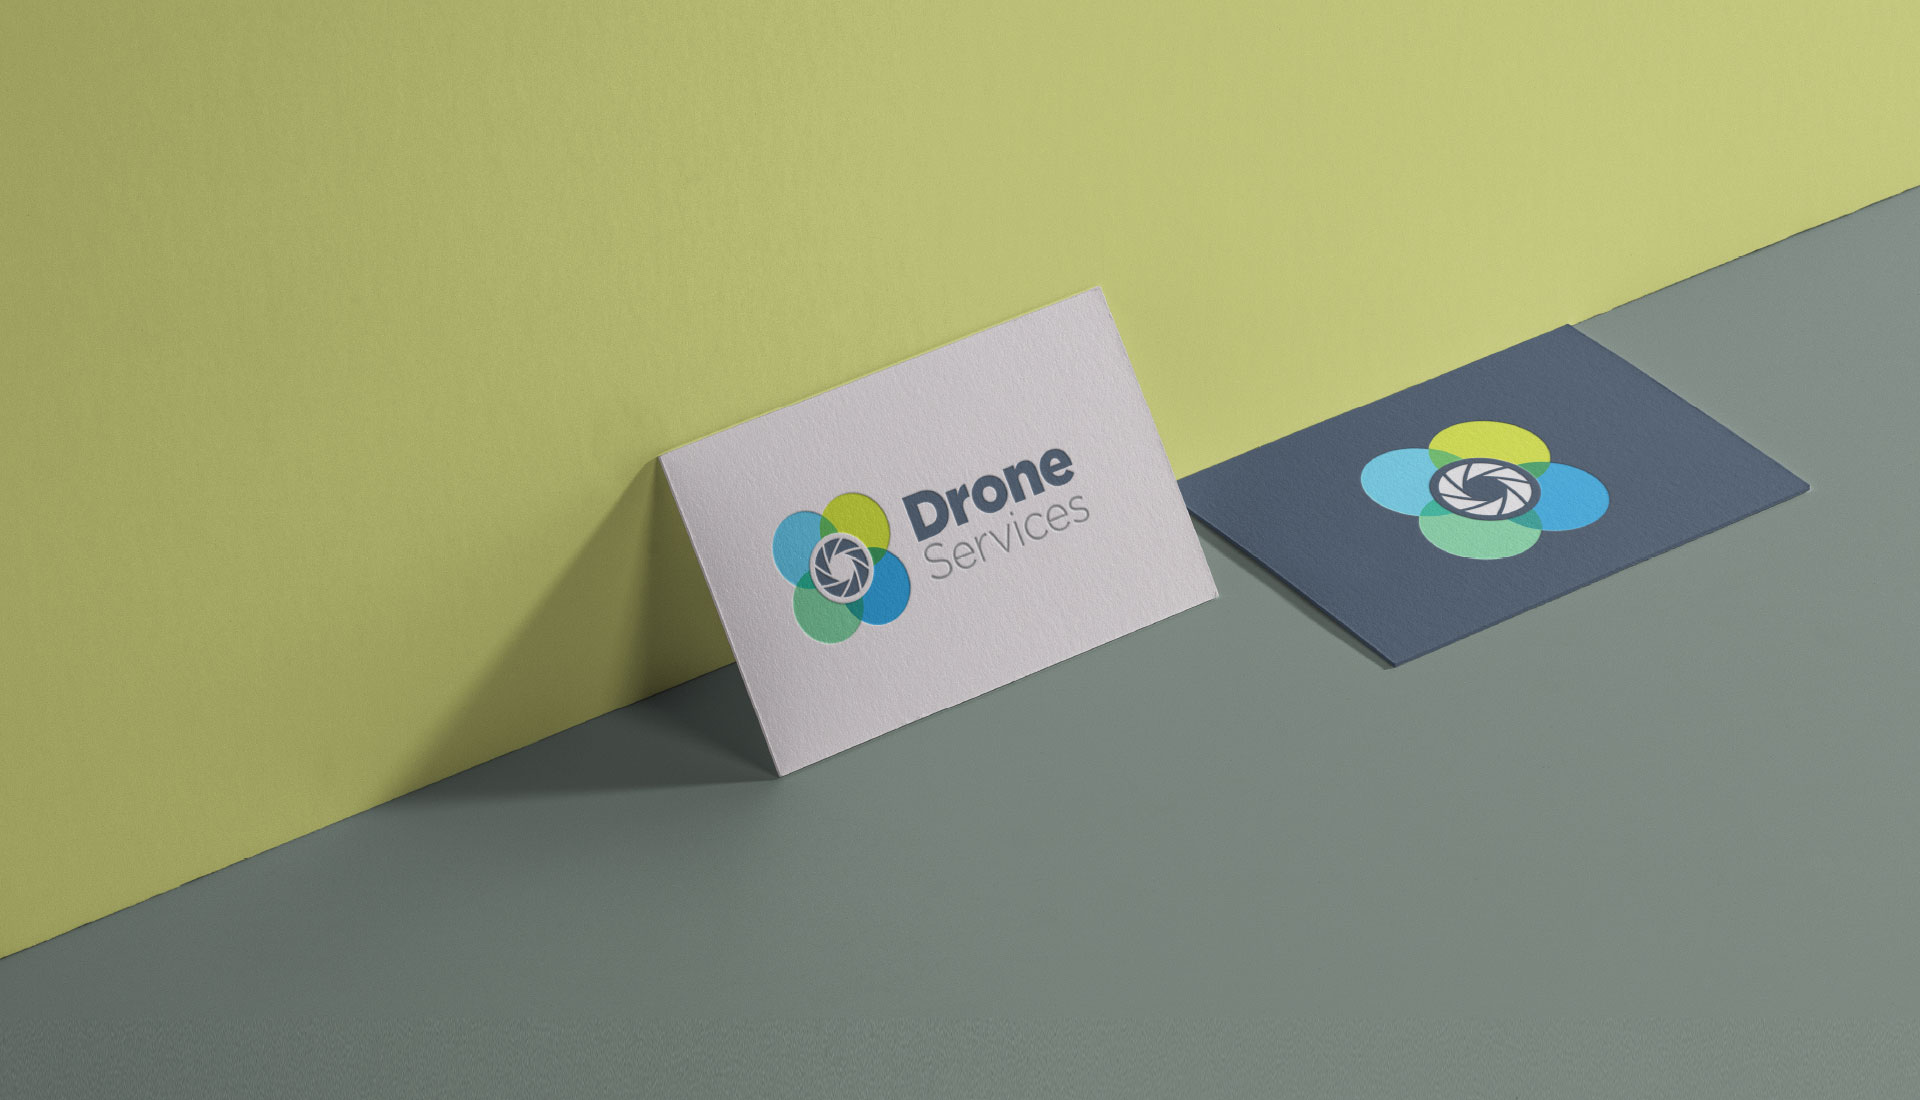 Drone Services Featured Image